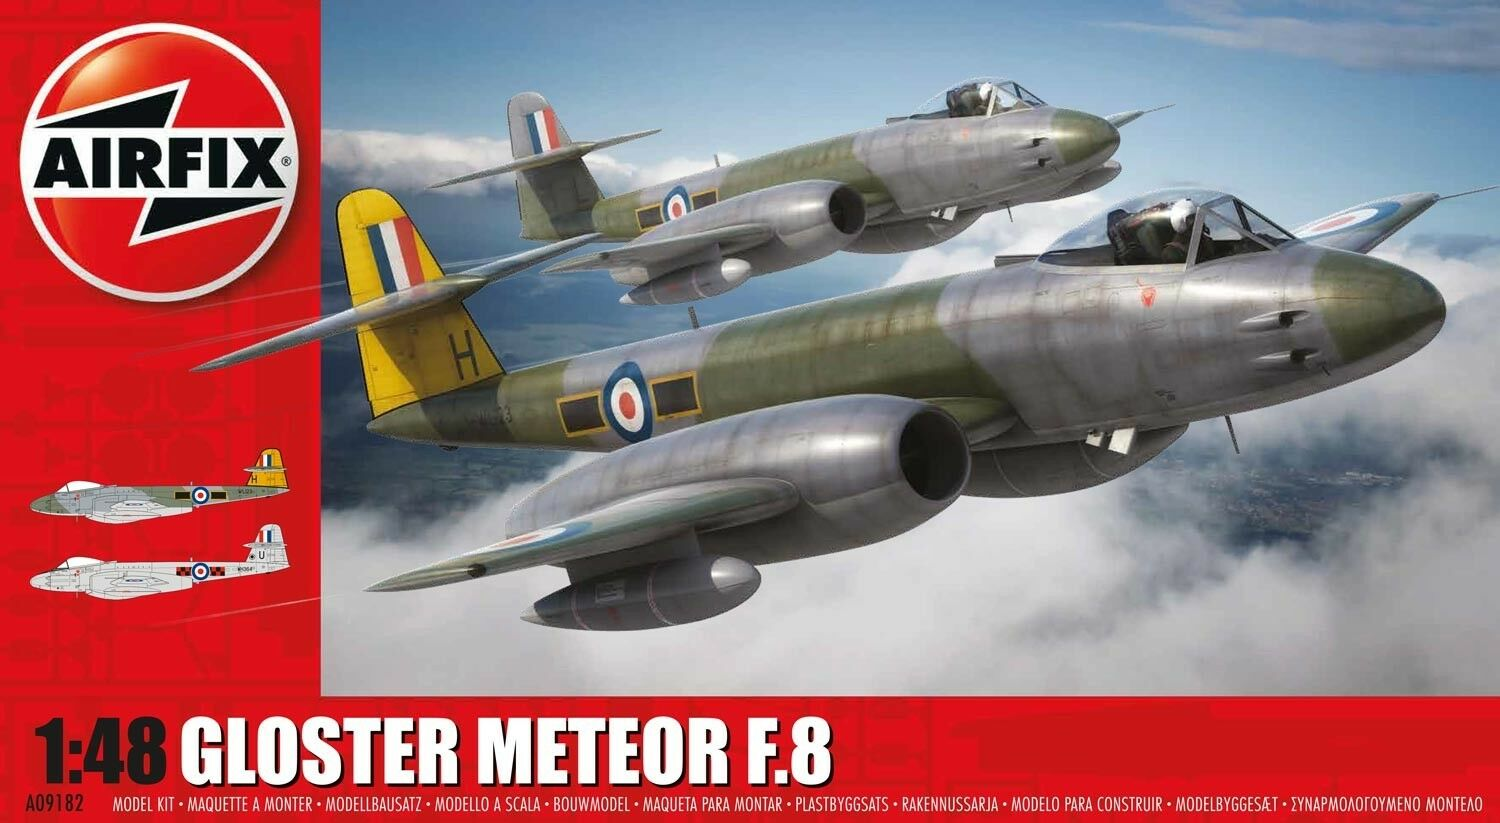 AIRFIX A09182 1 48 SCALE GLOSTER METEOR F.8 MODEL KIT NEW